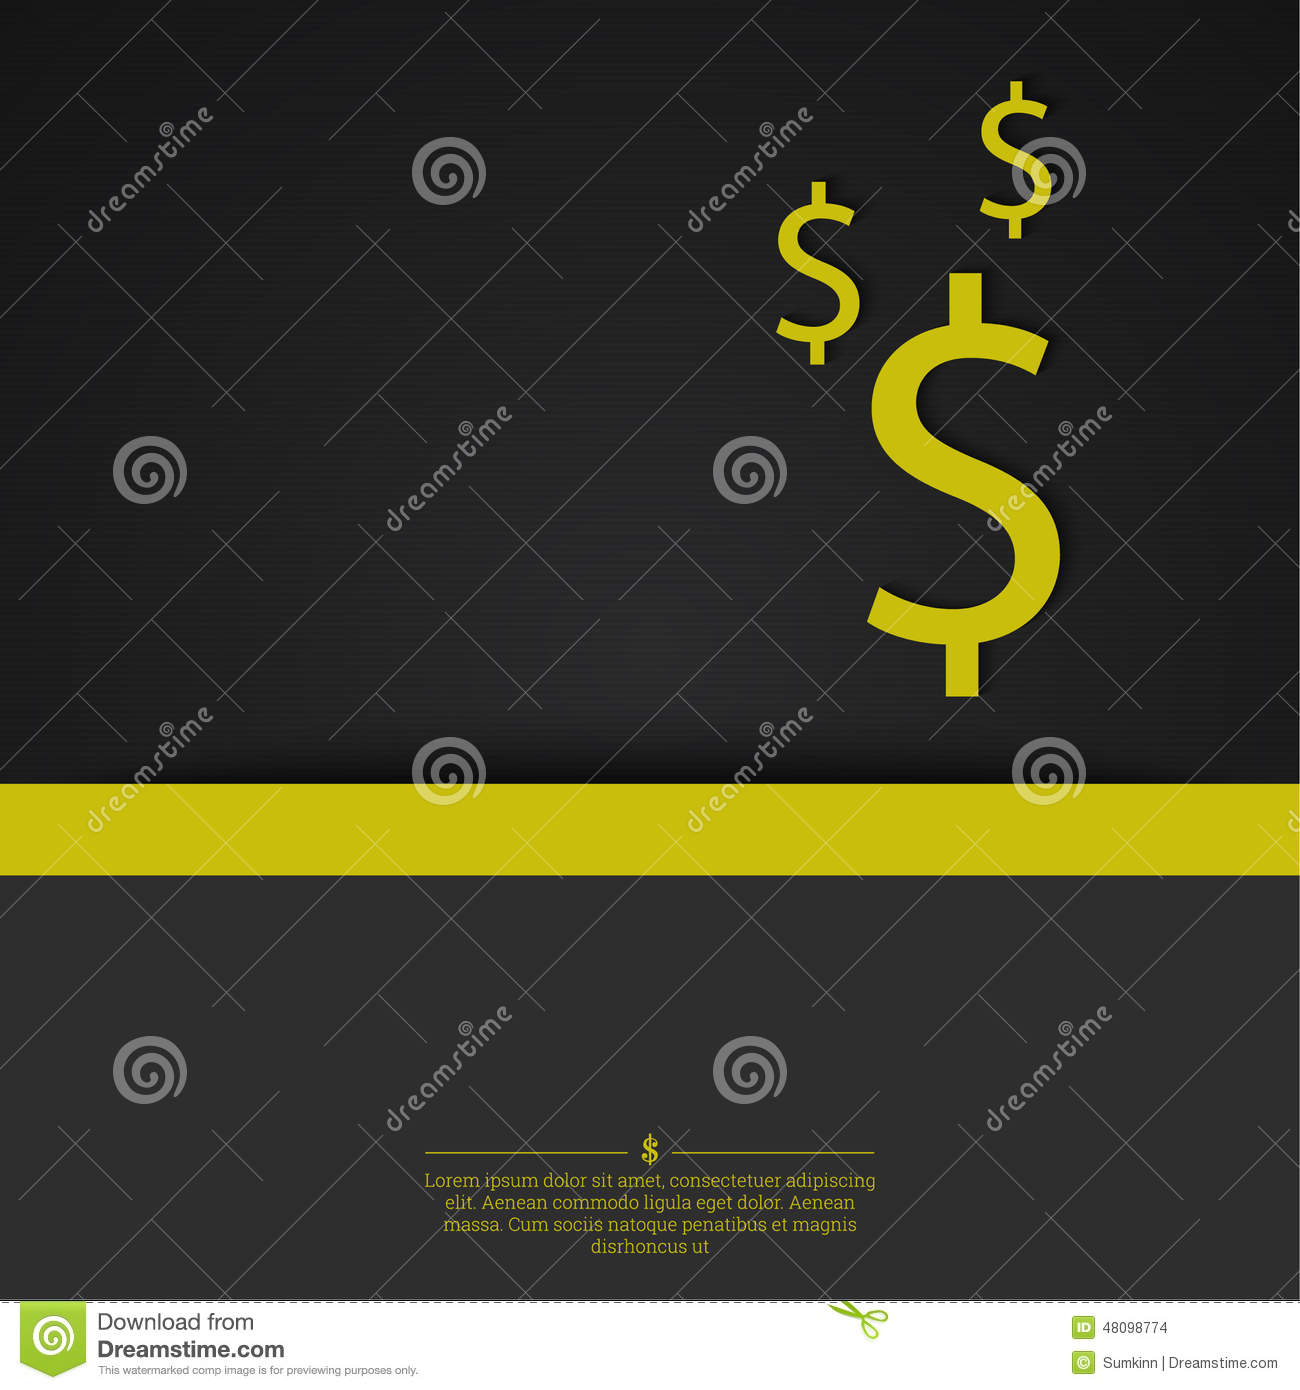 Abstract Background With A Dollar Sign. Illustration 48098774 - Megapixl